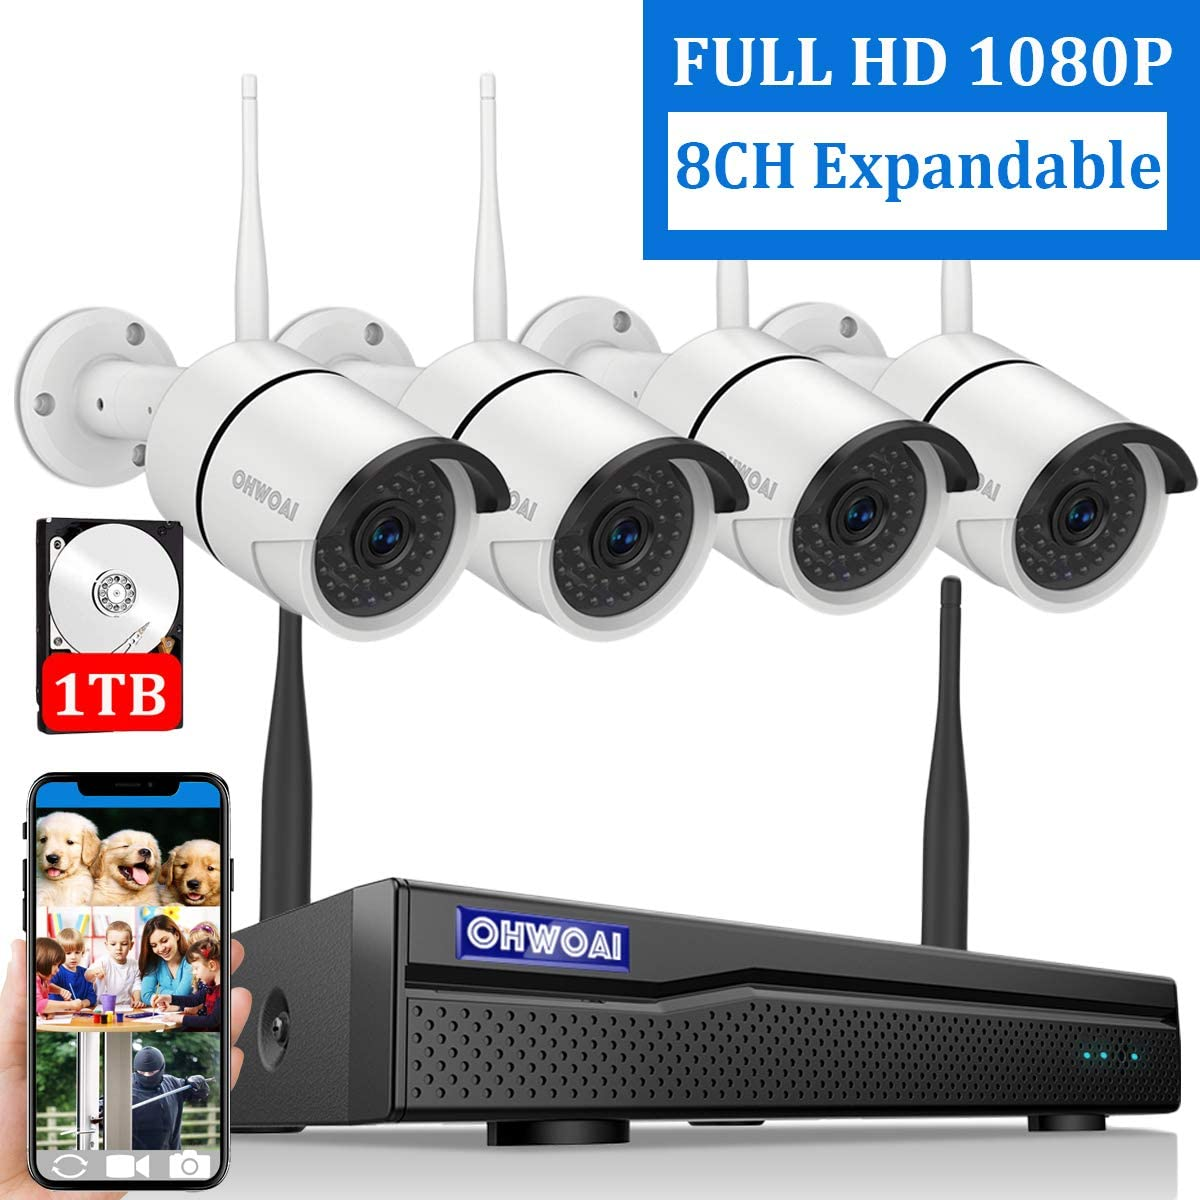 8CH Expandable Home Security Camera System Wireless, OHWOAI 8 Channel 1080P Surveillance DVR Recorder with 1TB Hard Drive, 4Pcs 2.0MP 1080P Outdoor Wireless CCTV IP Cameras,Night Vision,Waterproof